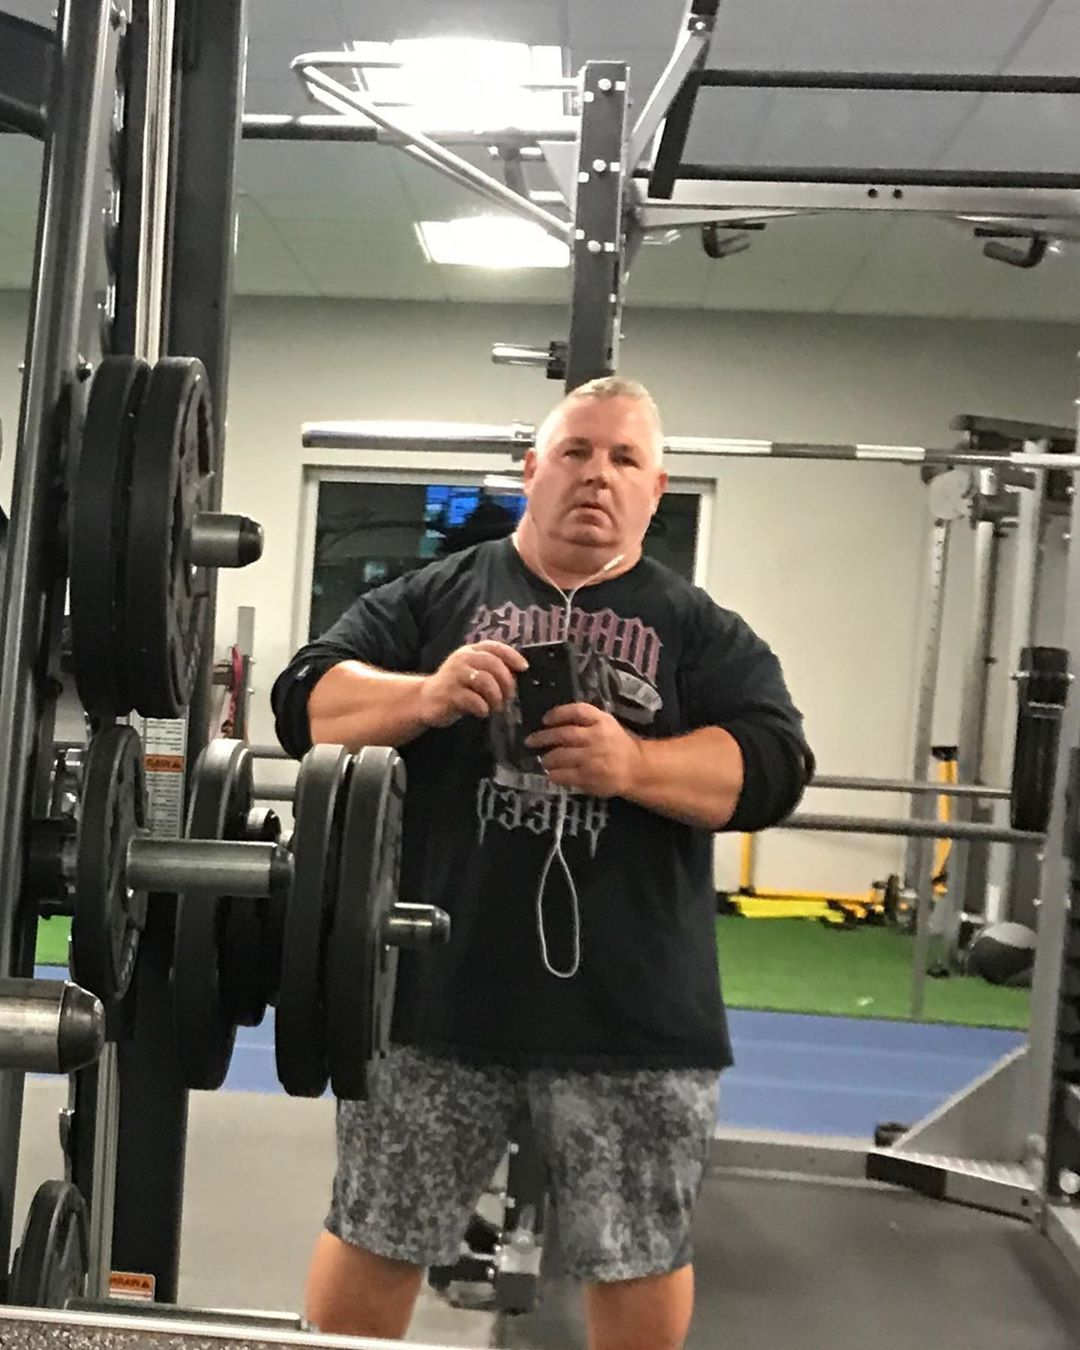 Tonight At The Dean And Barbara White Southlake Ymca I Worked Chest 28 Sets Cardio 30 Minutes Abs 3 Sets And Forearms 8 Set Fitness Motivation Gym Motivation Bench Press